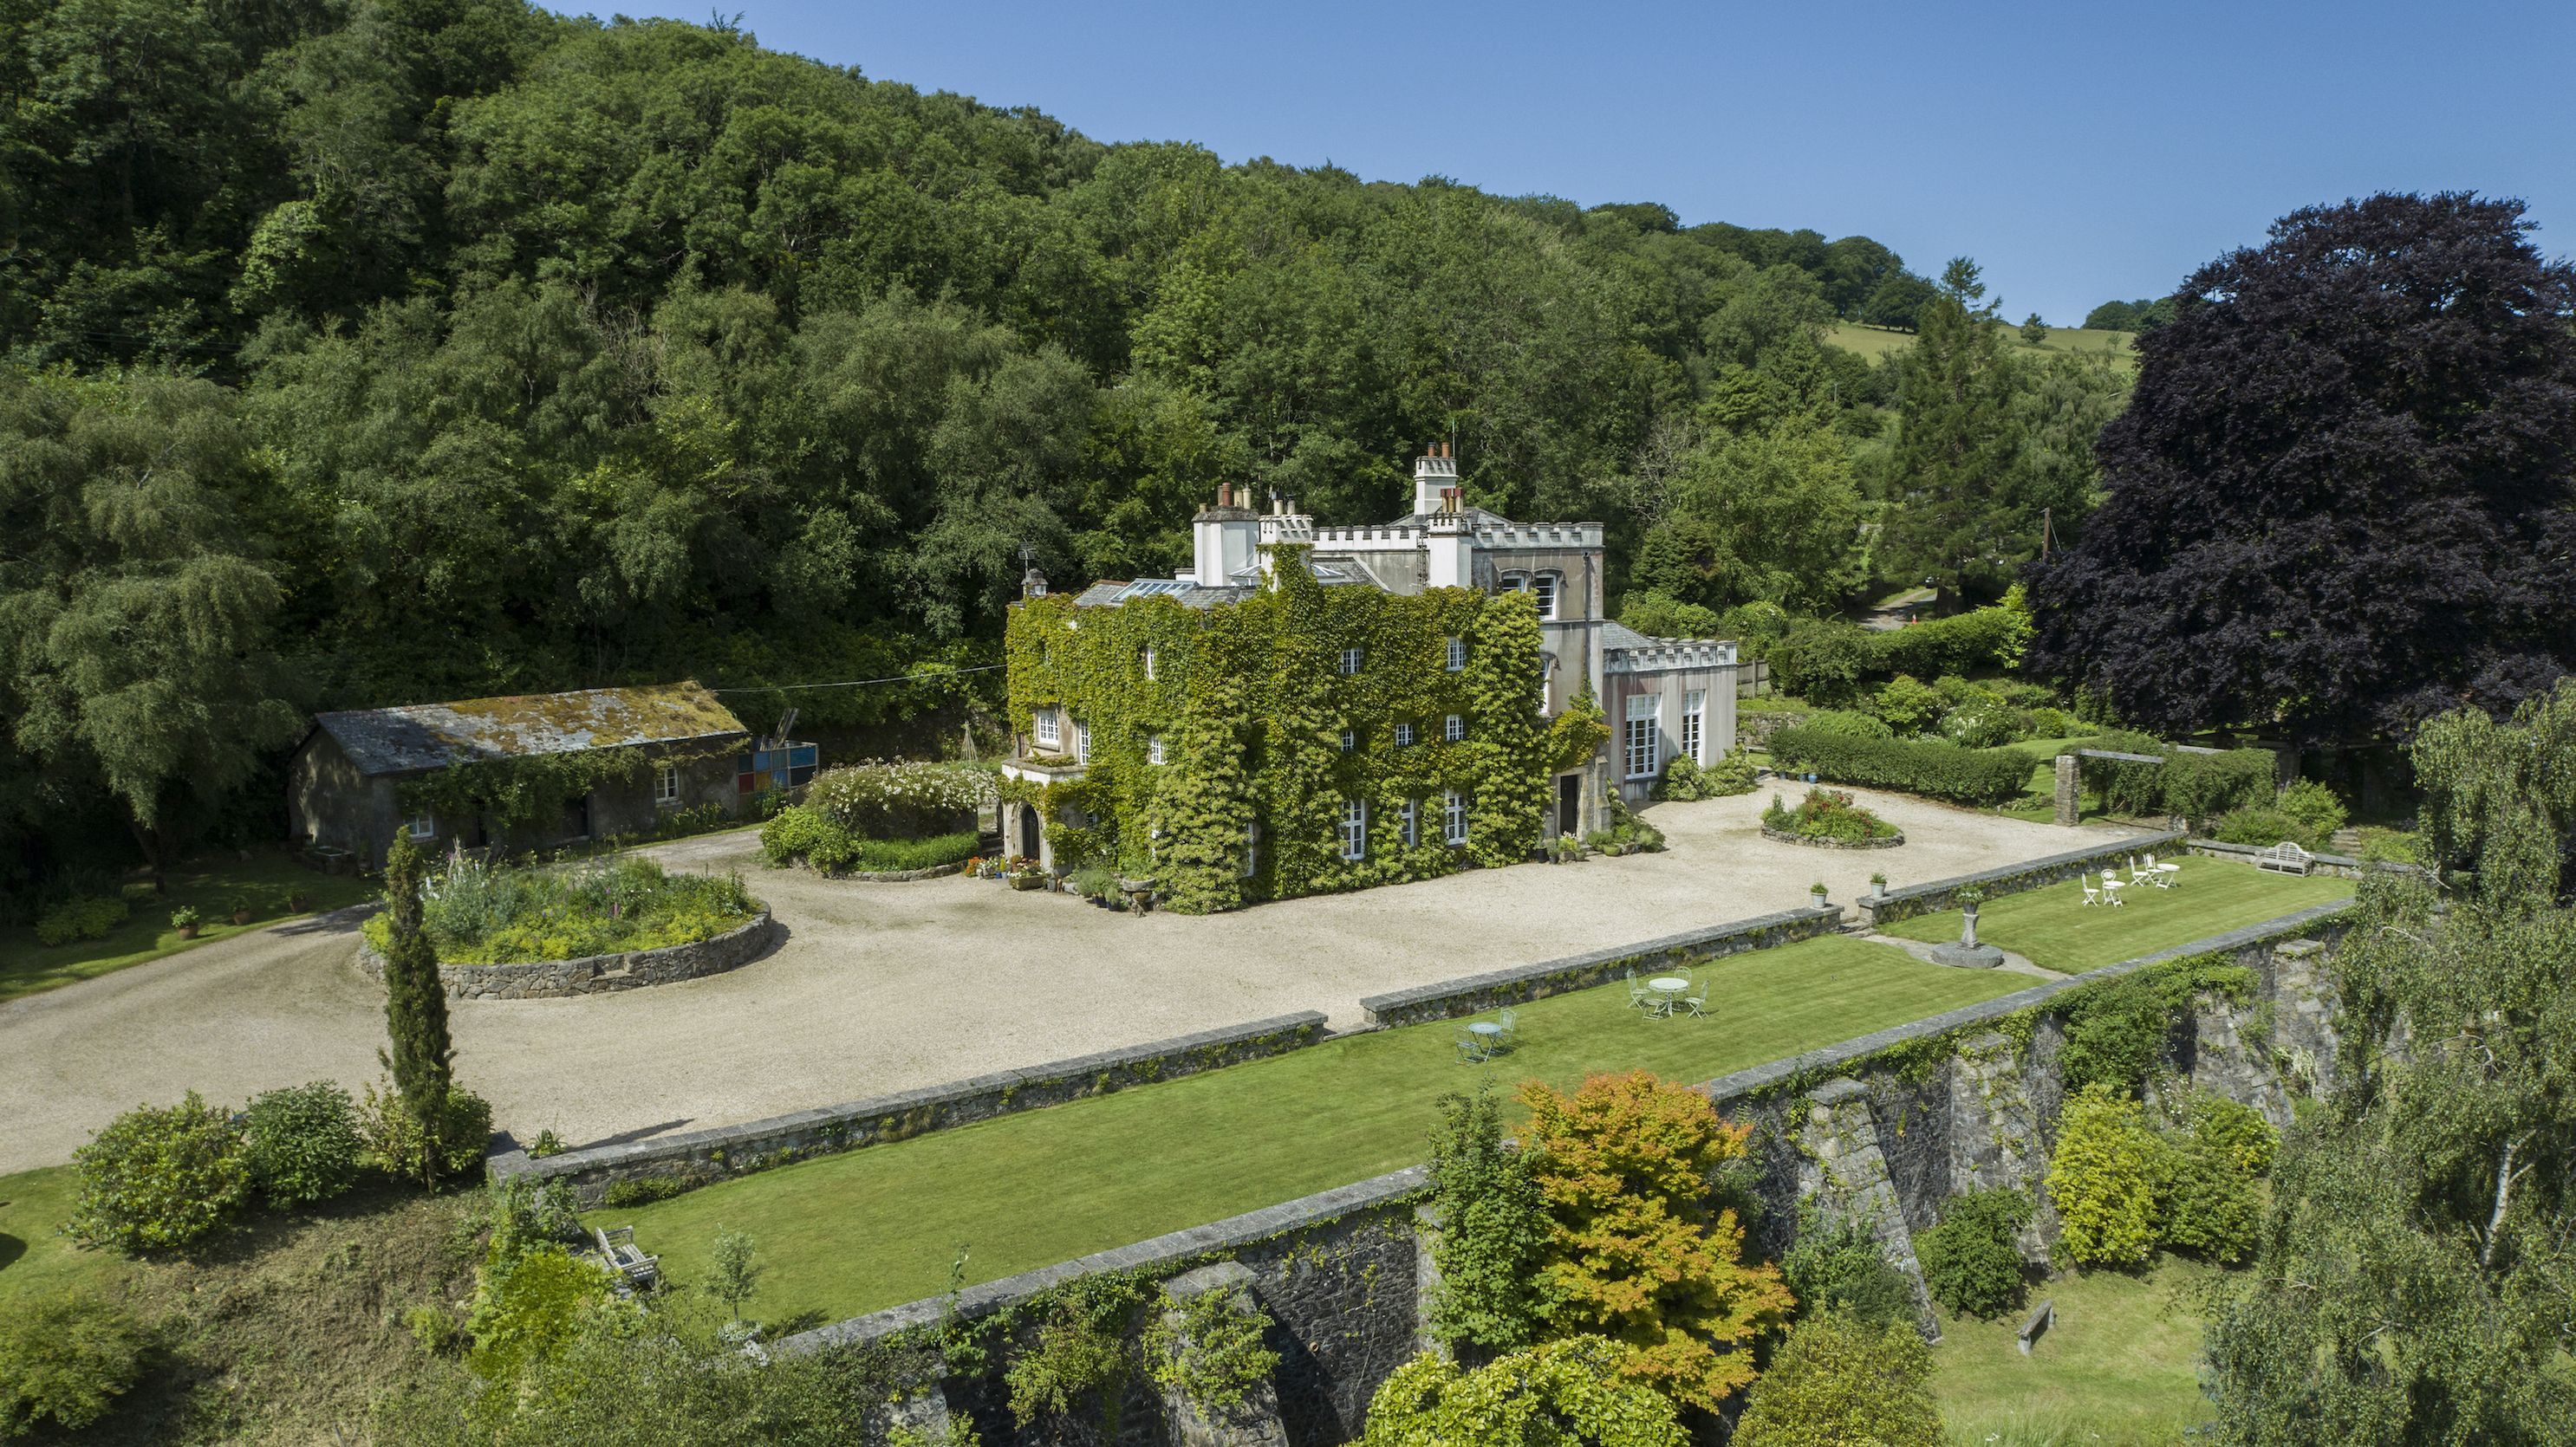 Castellated country house for sale in Devon for first time in 50 years